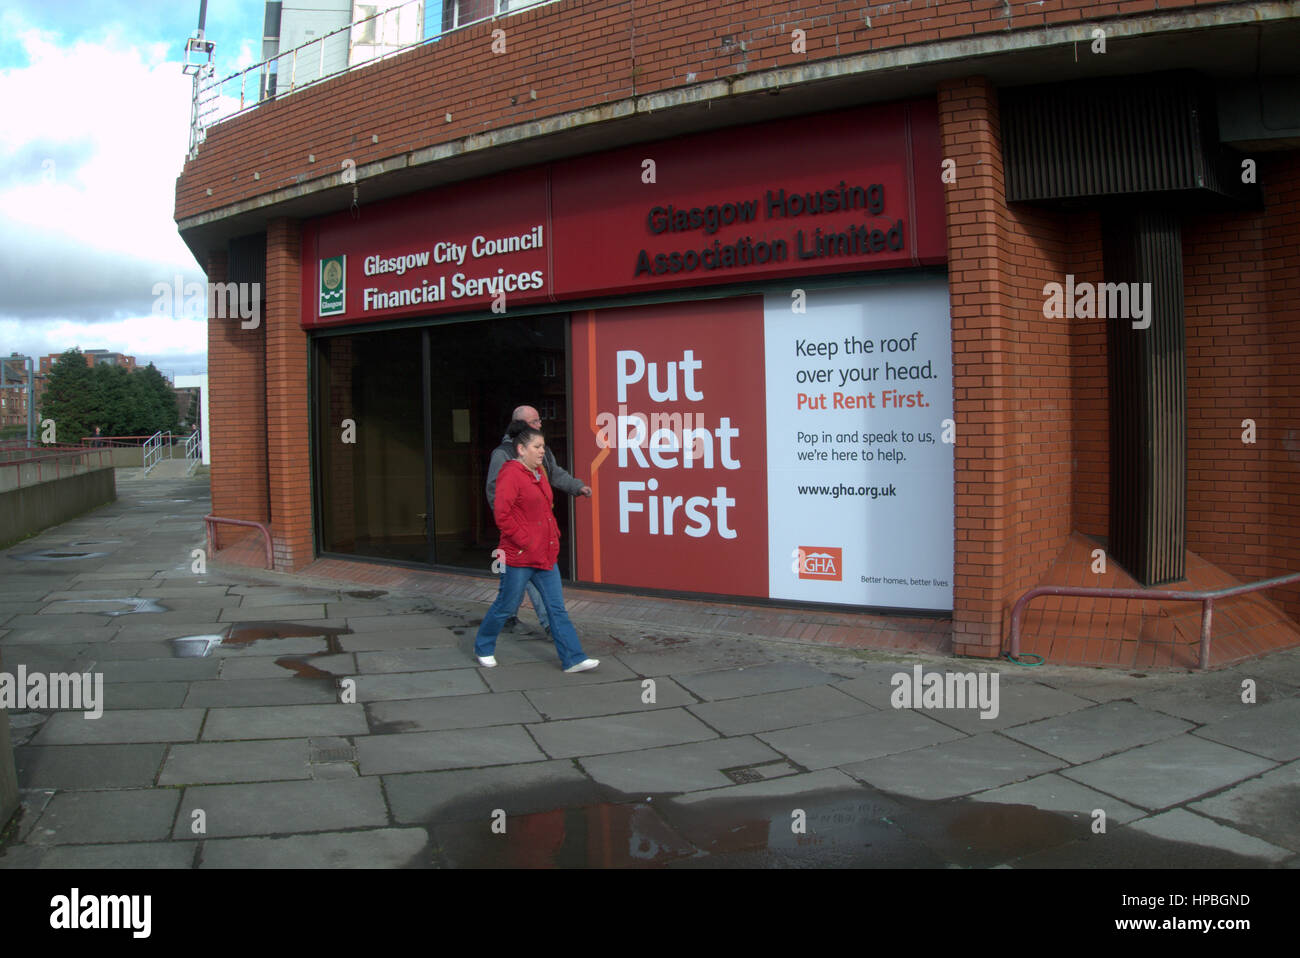 council rent office with put rent first sign to deter rent arrears and homelessness - Stock Image